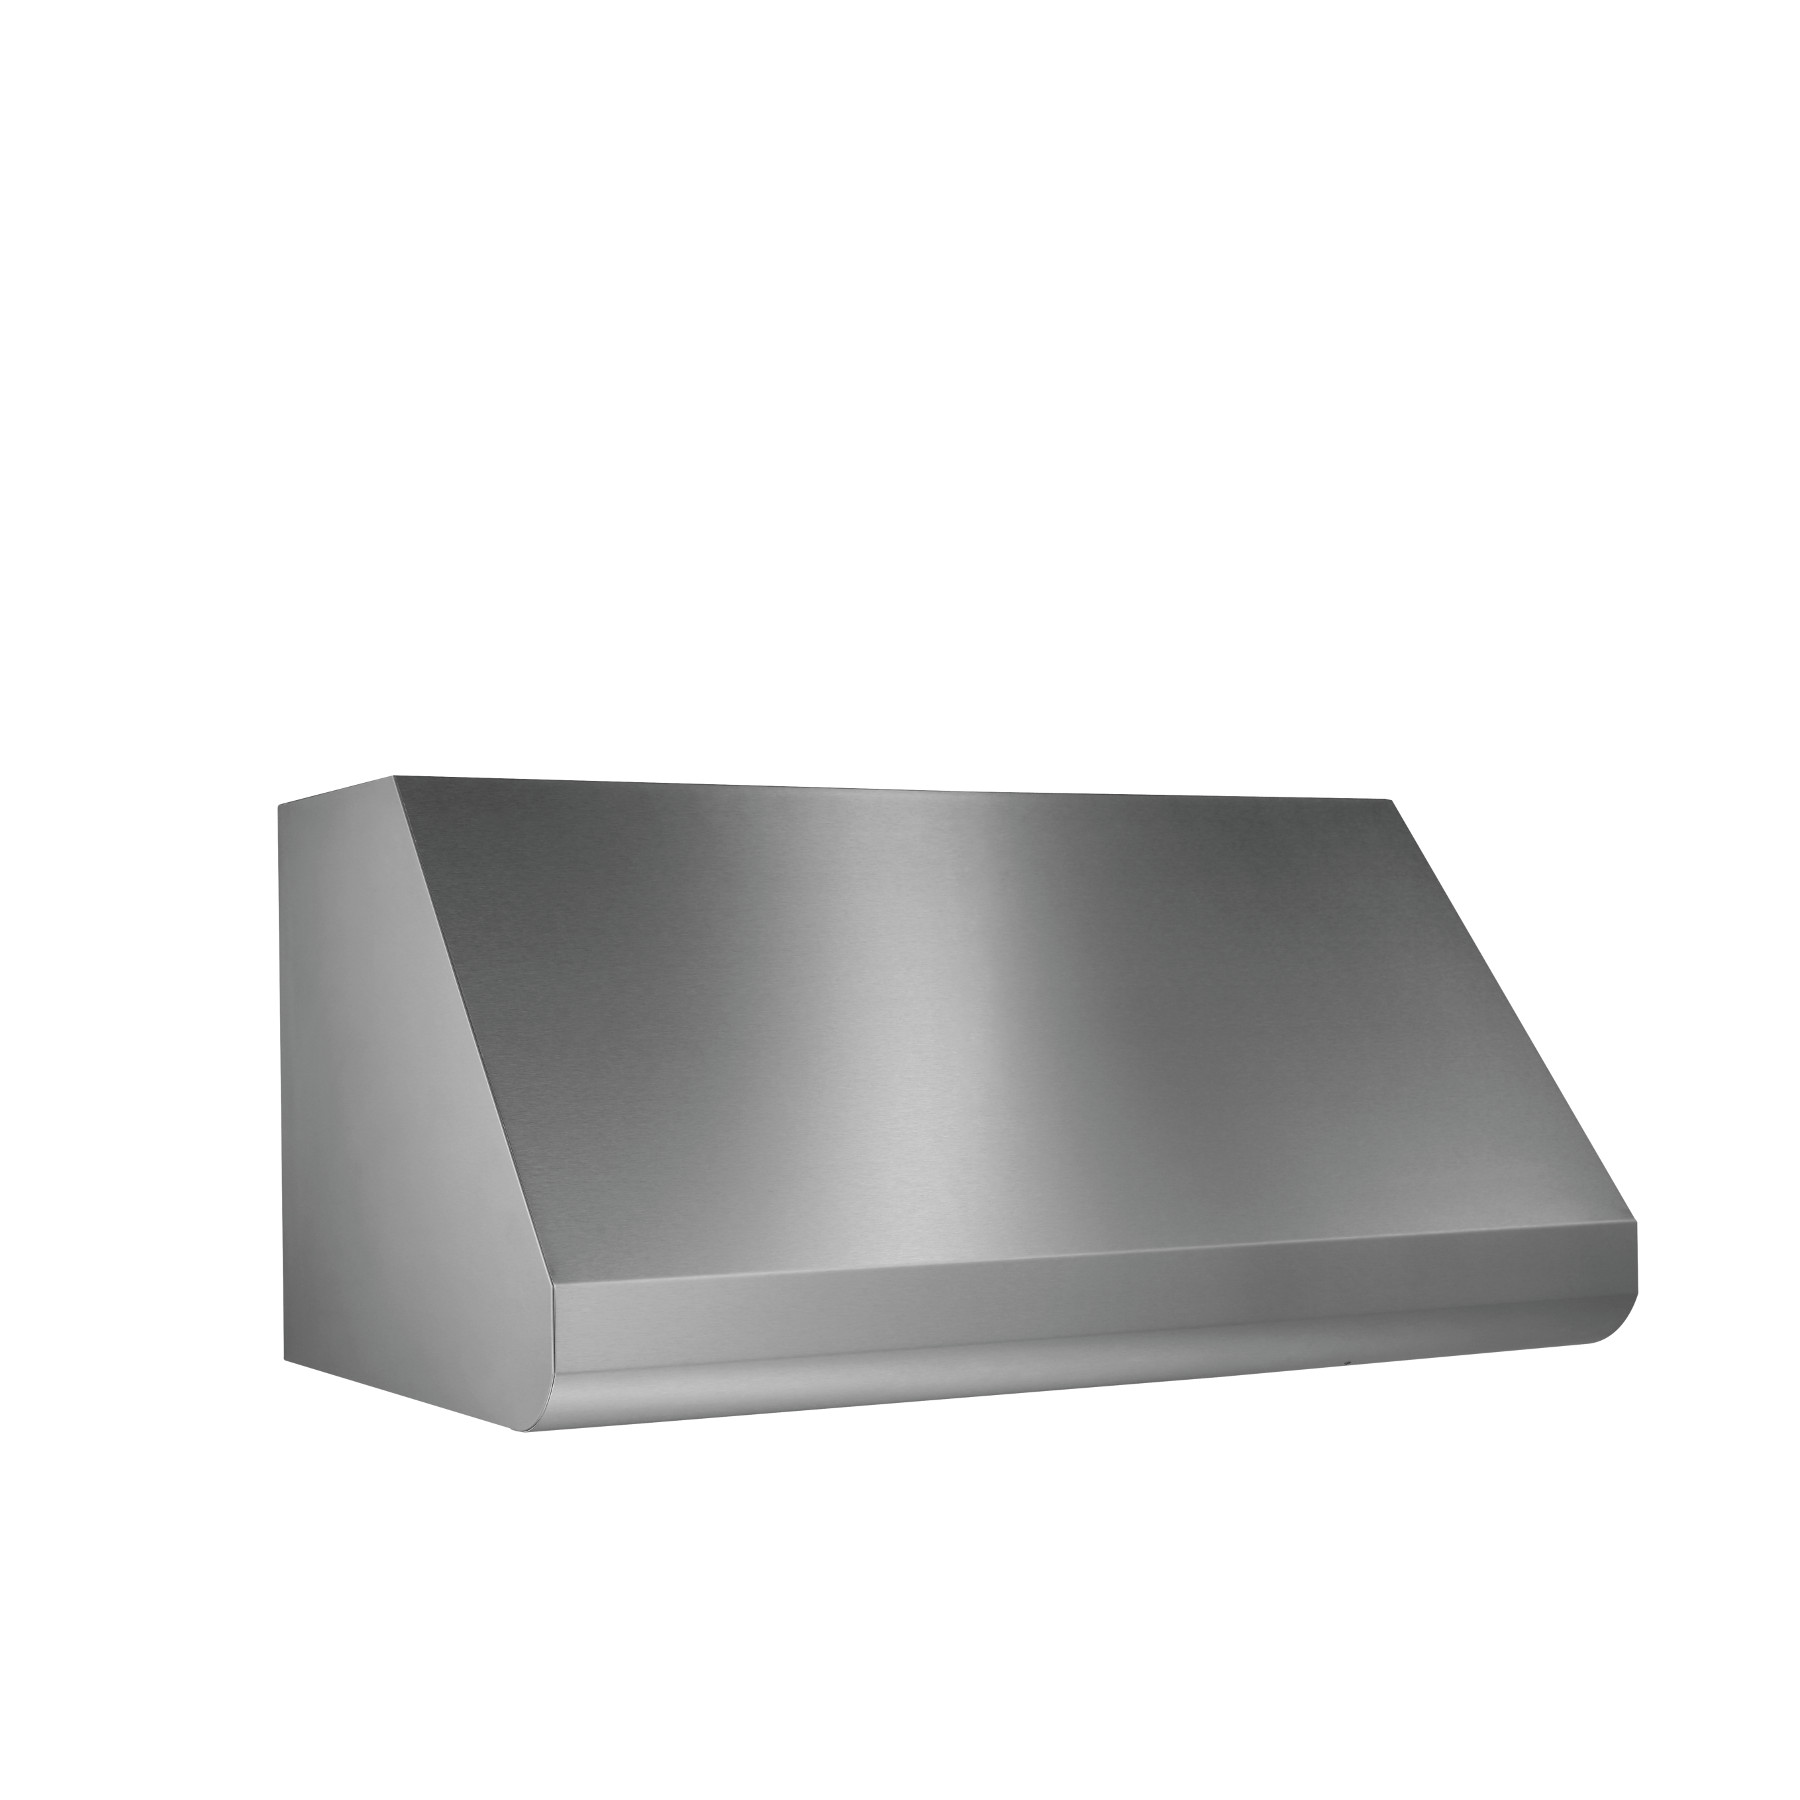 Broan Elite E60E Pro-Style 30-inch Canopy Wall-Mount Range Hood, choice of 280-1500 CFM External Blower, Stainless Steel